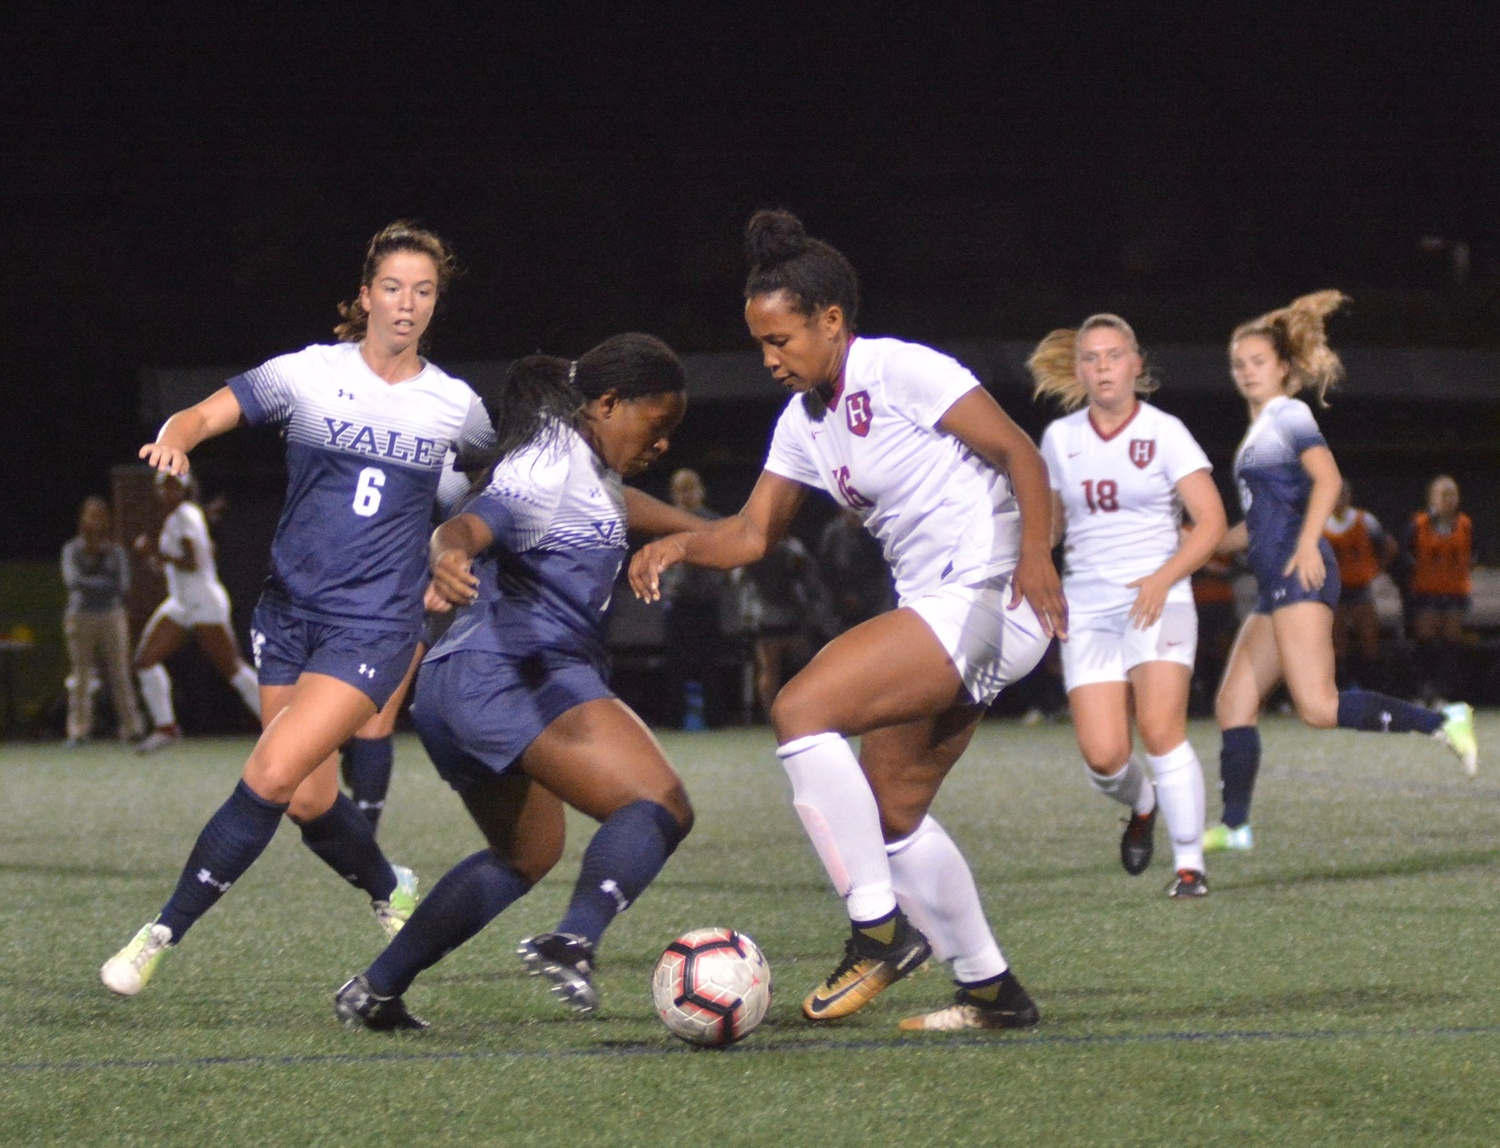 Freshmen defender Jillian Wachira makes a move against a Yale player in Saturday night's 1-0 victory.